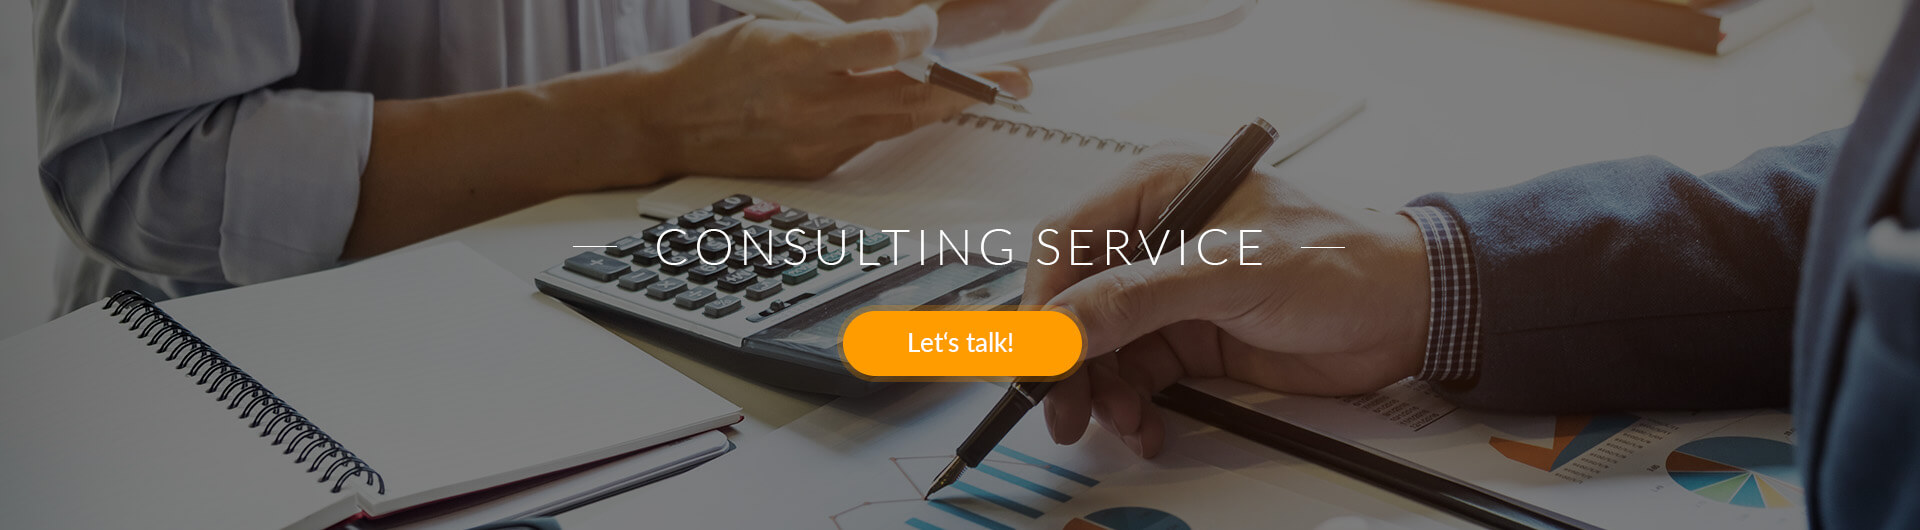 magento consulting service